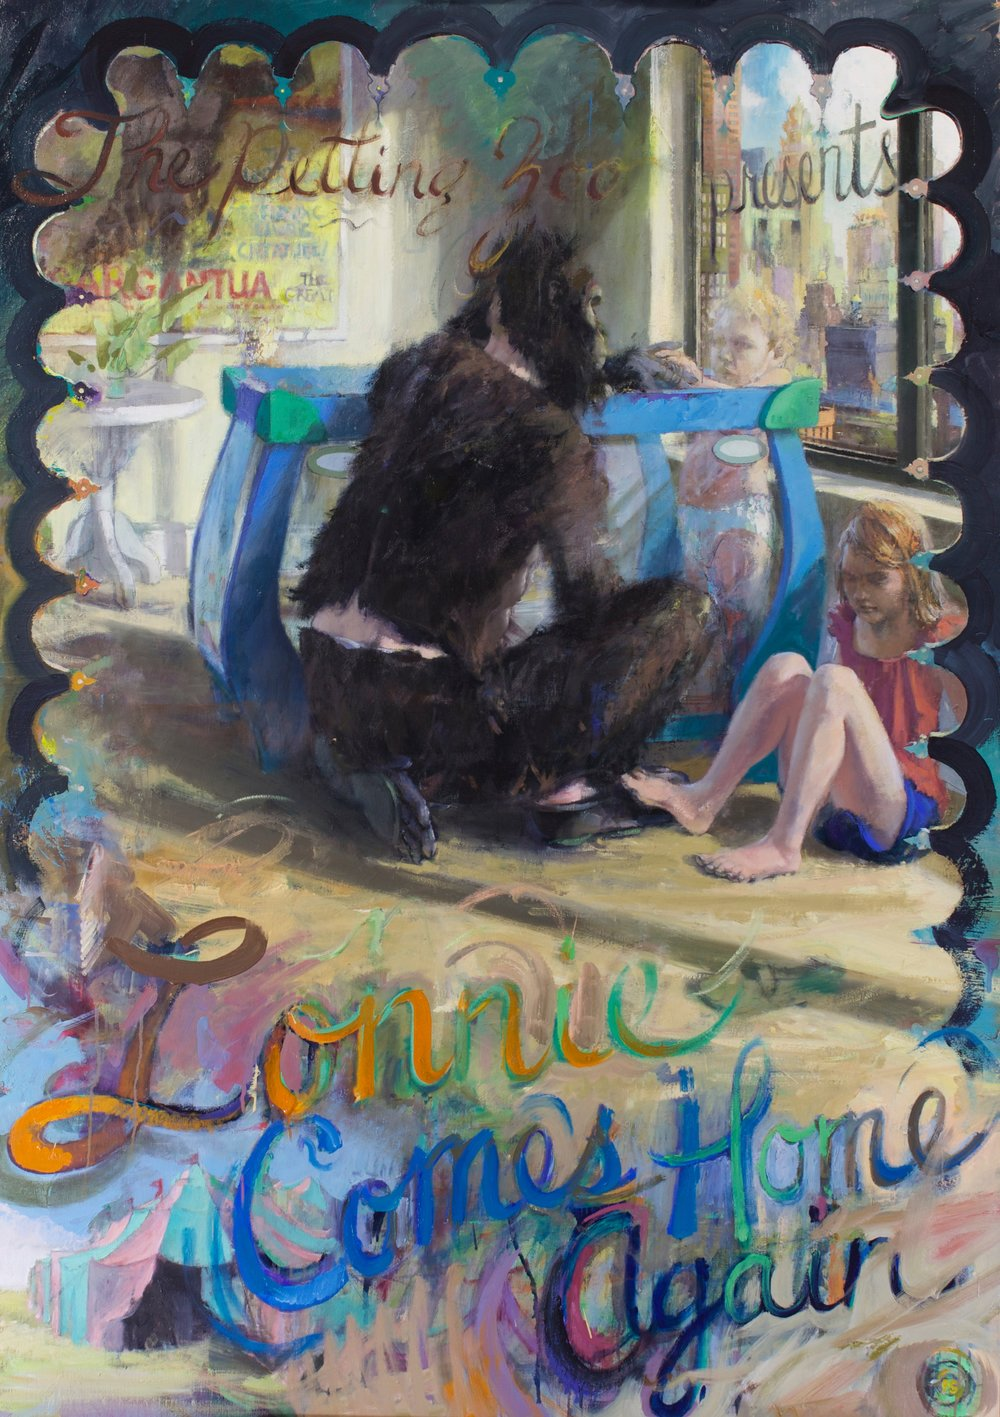 Lonnie Comes Home Again, 2017 oil on canvas on panel, 68 x 48 inches